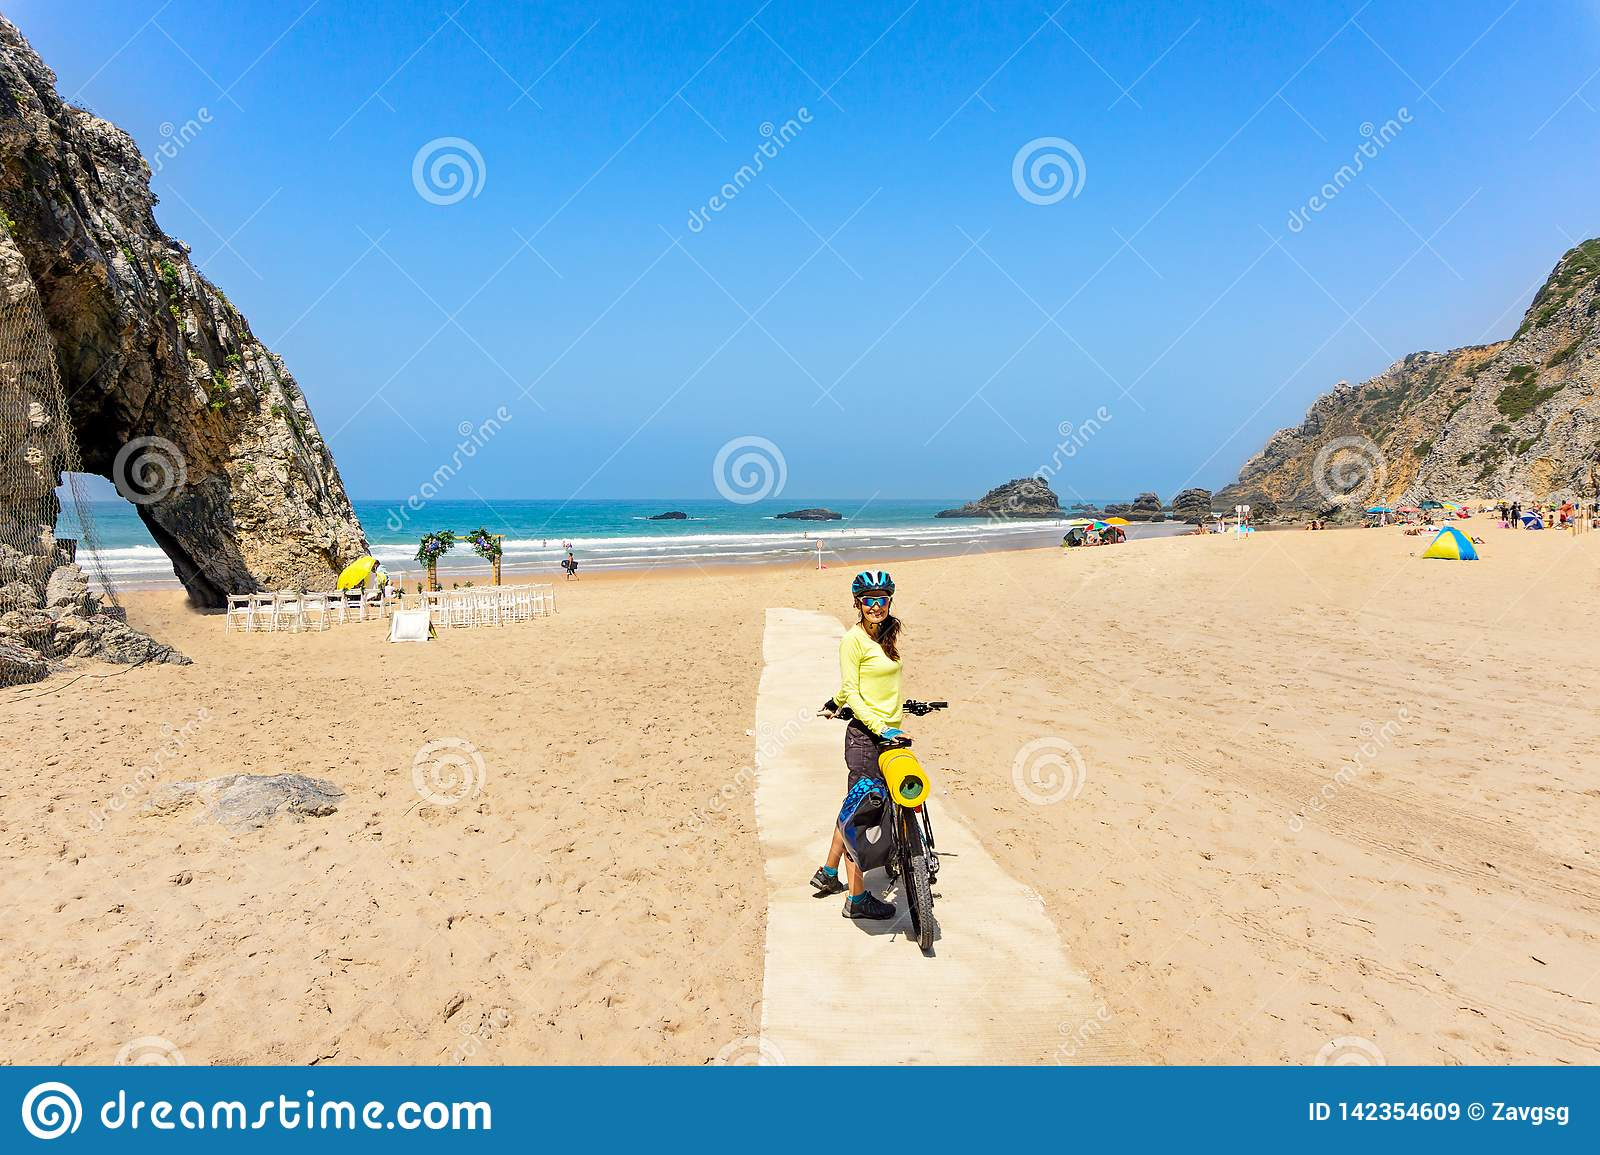 Adult attractive female cyclist with her bike is posing and smiling on a ocean beach. Portugal, Europe